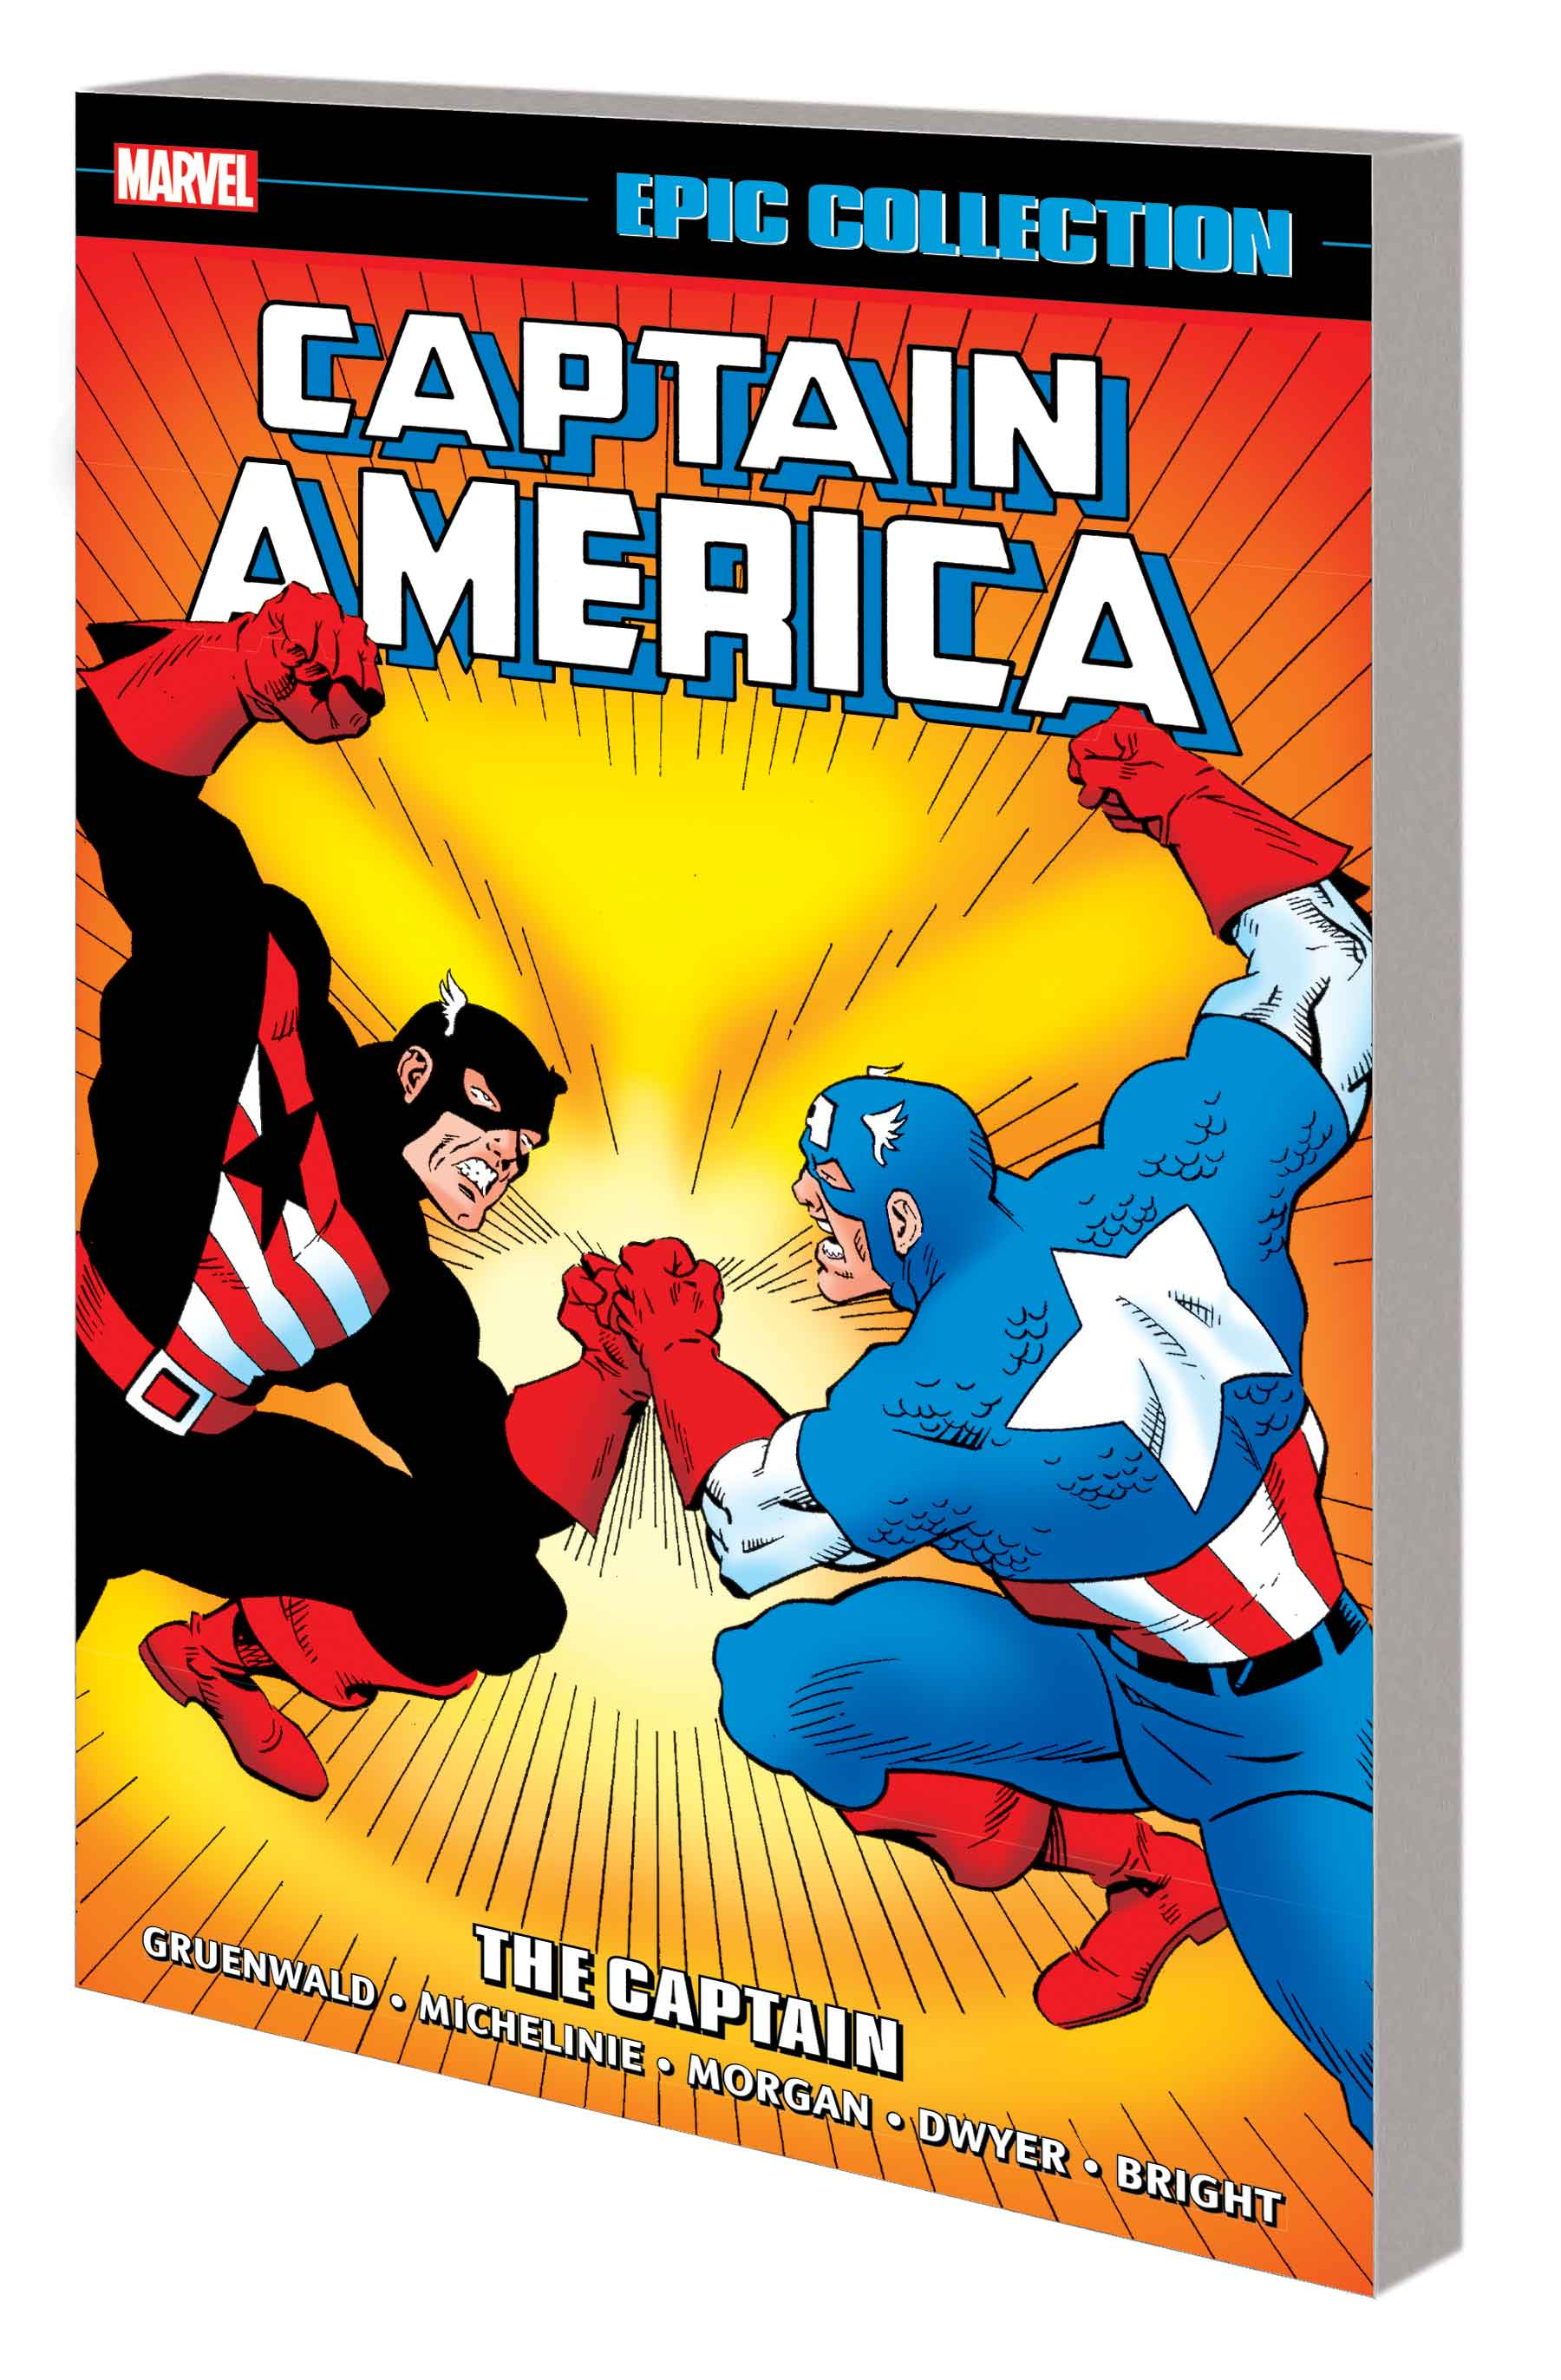 CAPTAIN AMERICA EPIC COLLECTION: THE CAPTAIN TPB (Trade Paperback)